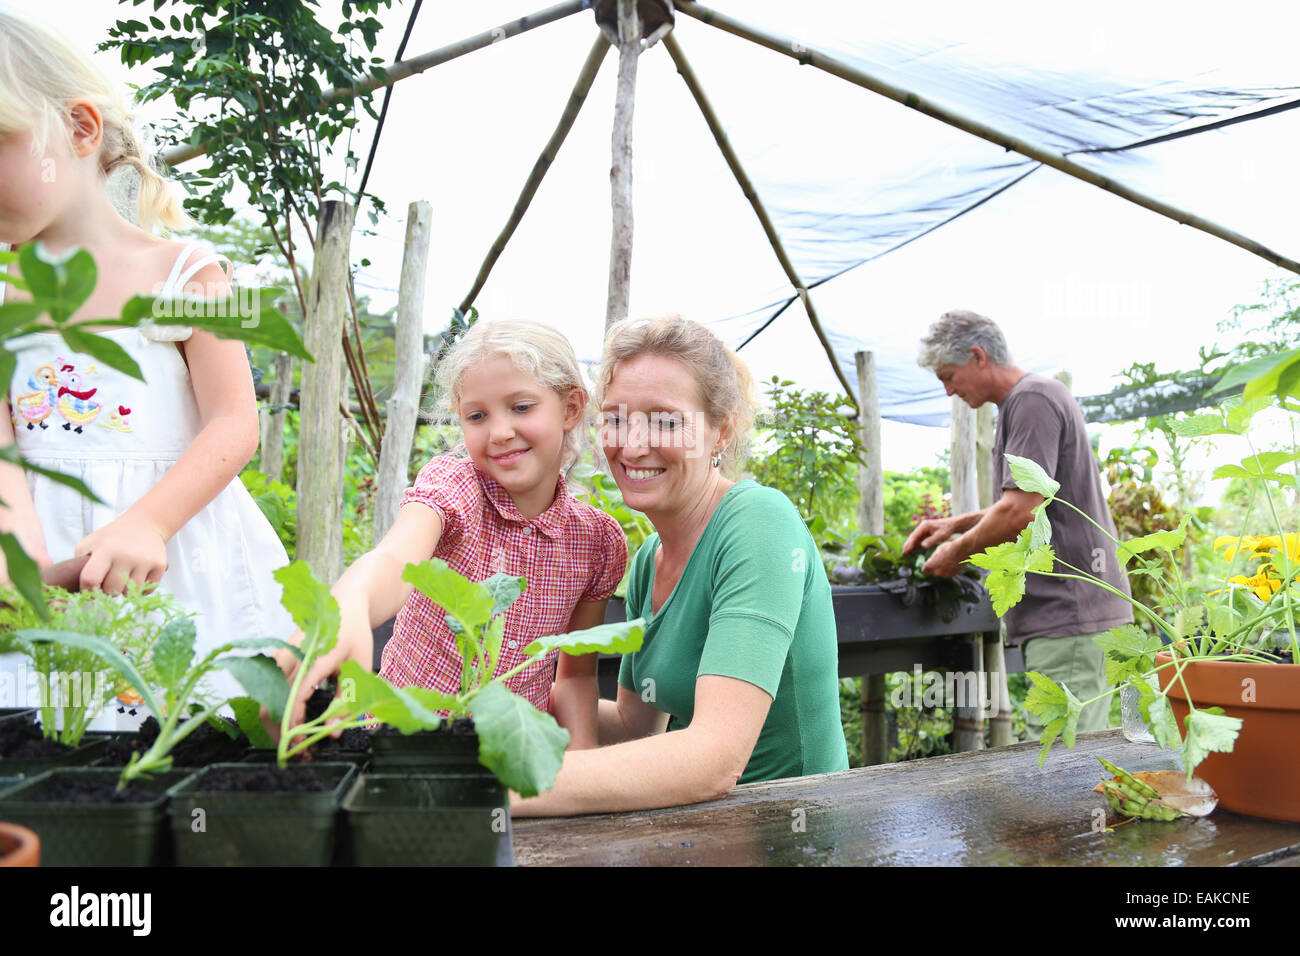 Smiling woman with two girls looking at seedlings in greenhouse, man in background - Stock Image